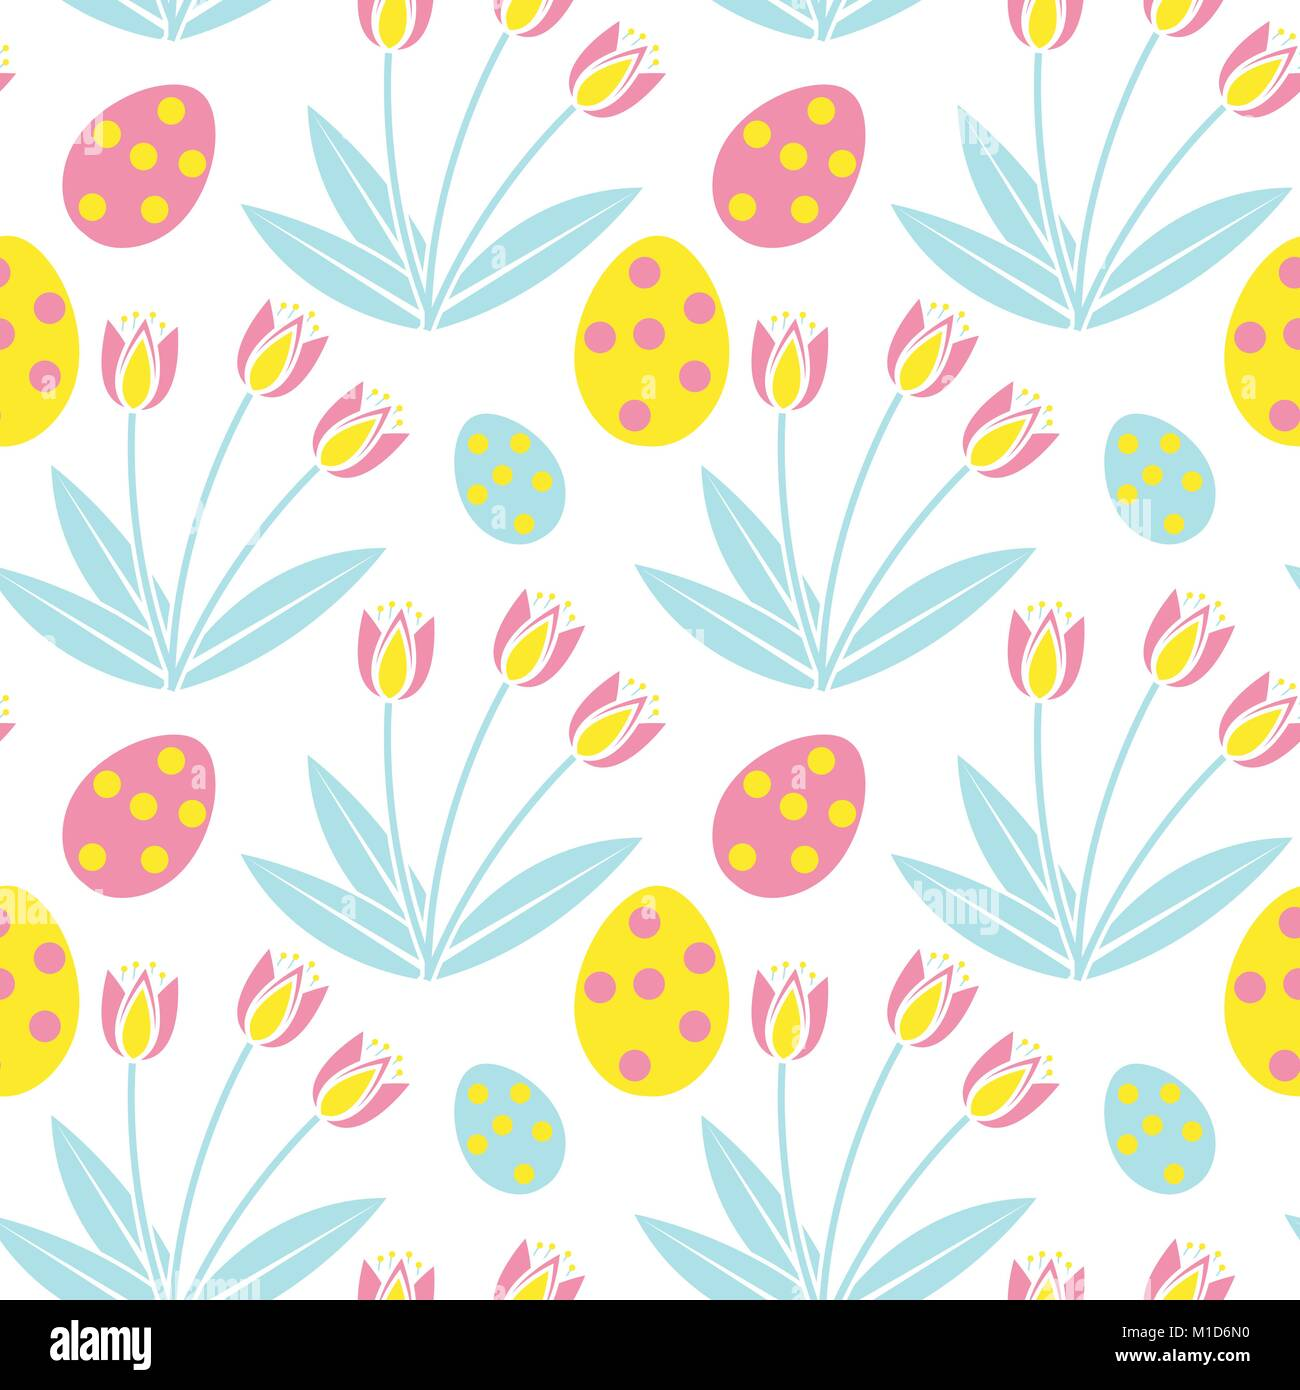 Cute easter seamless pattern spring repeating textures cute easter seamless pattern spring repeating textures childrens baby kids endless background biocorpaavc